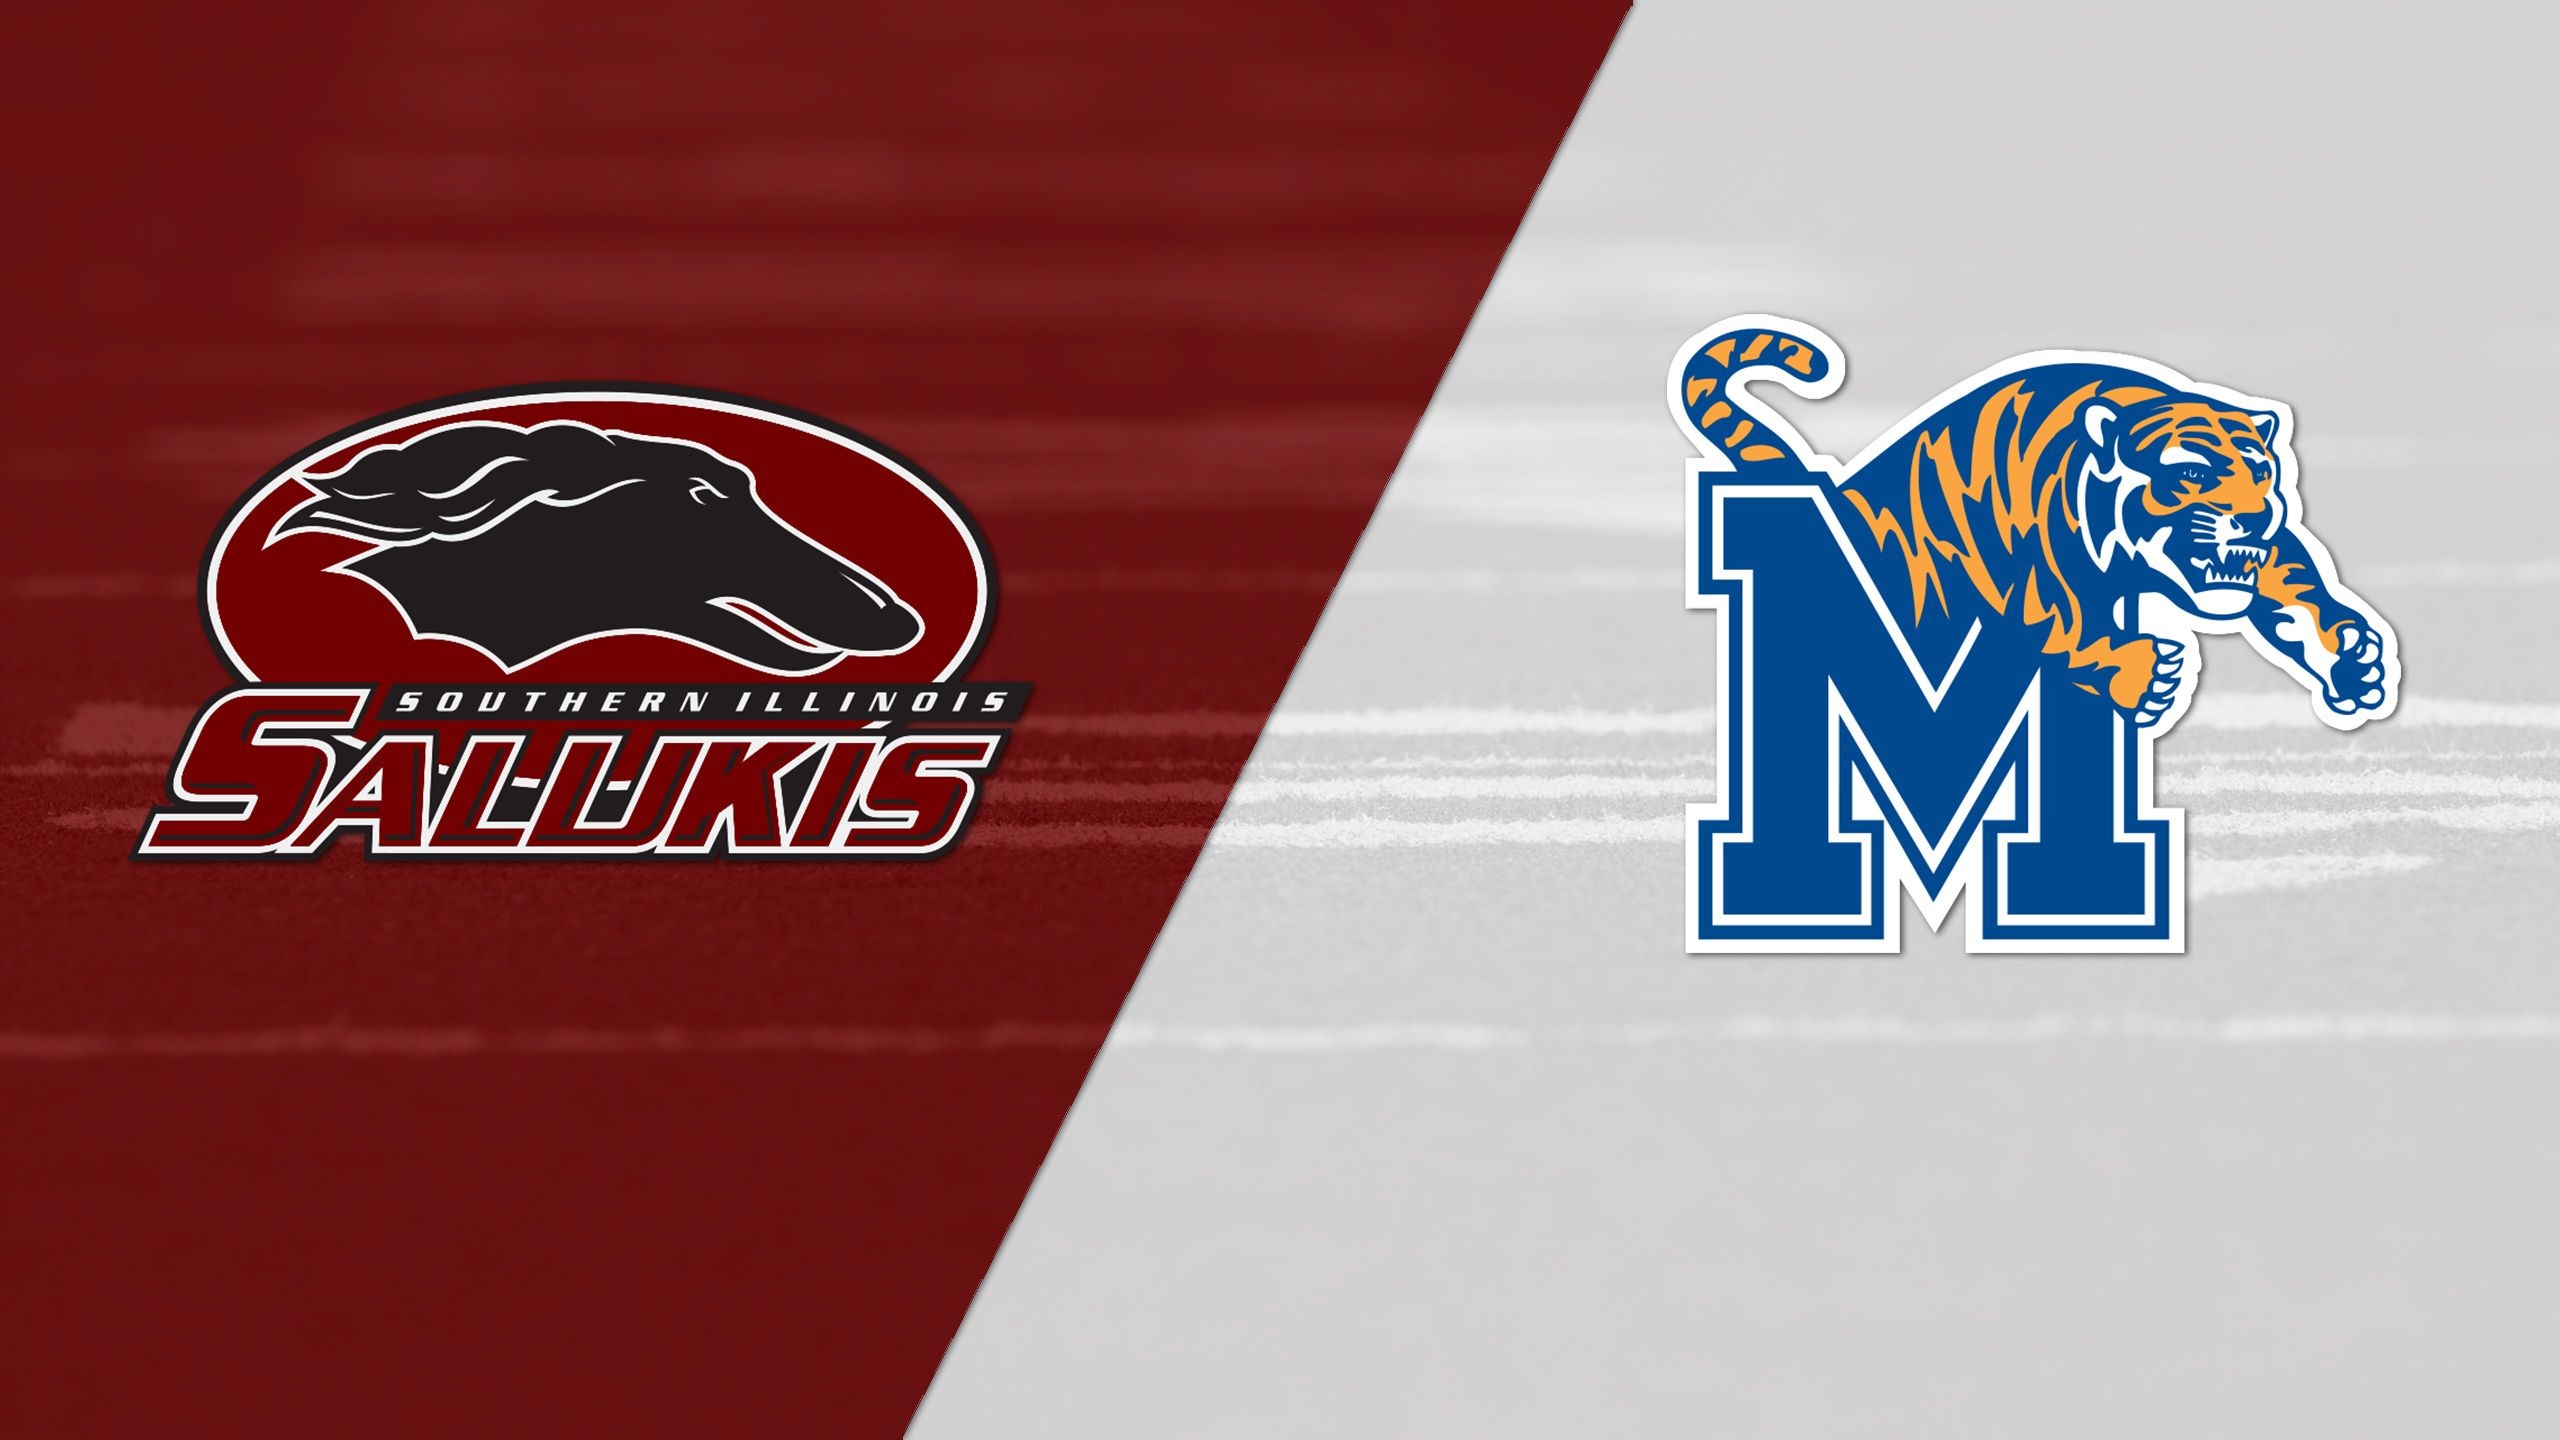 Southern Illinois vs. Memphis (Football)